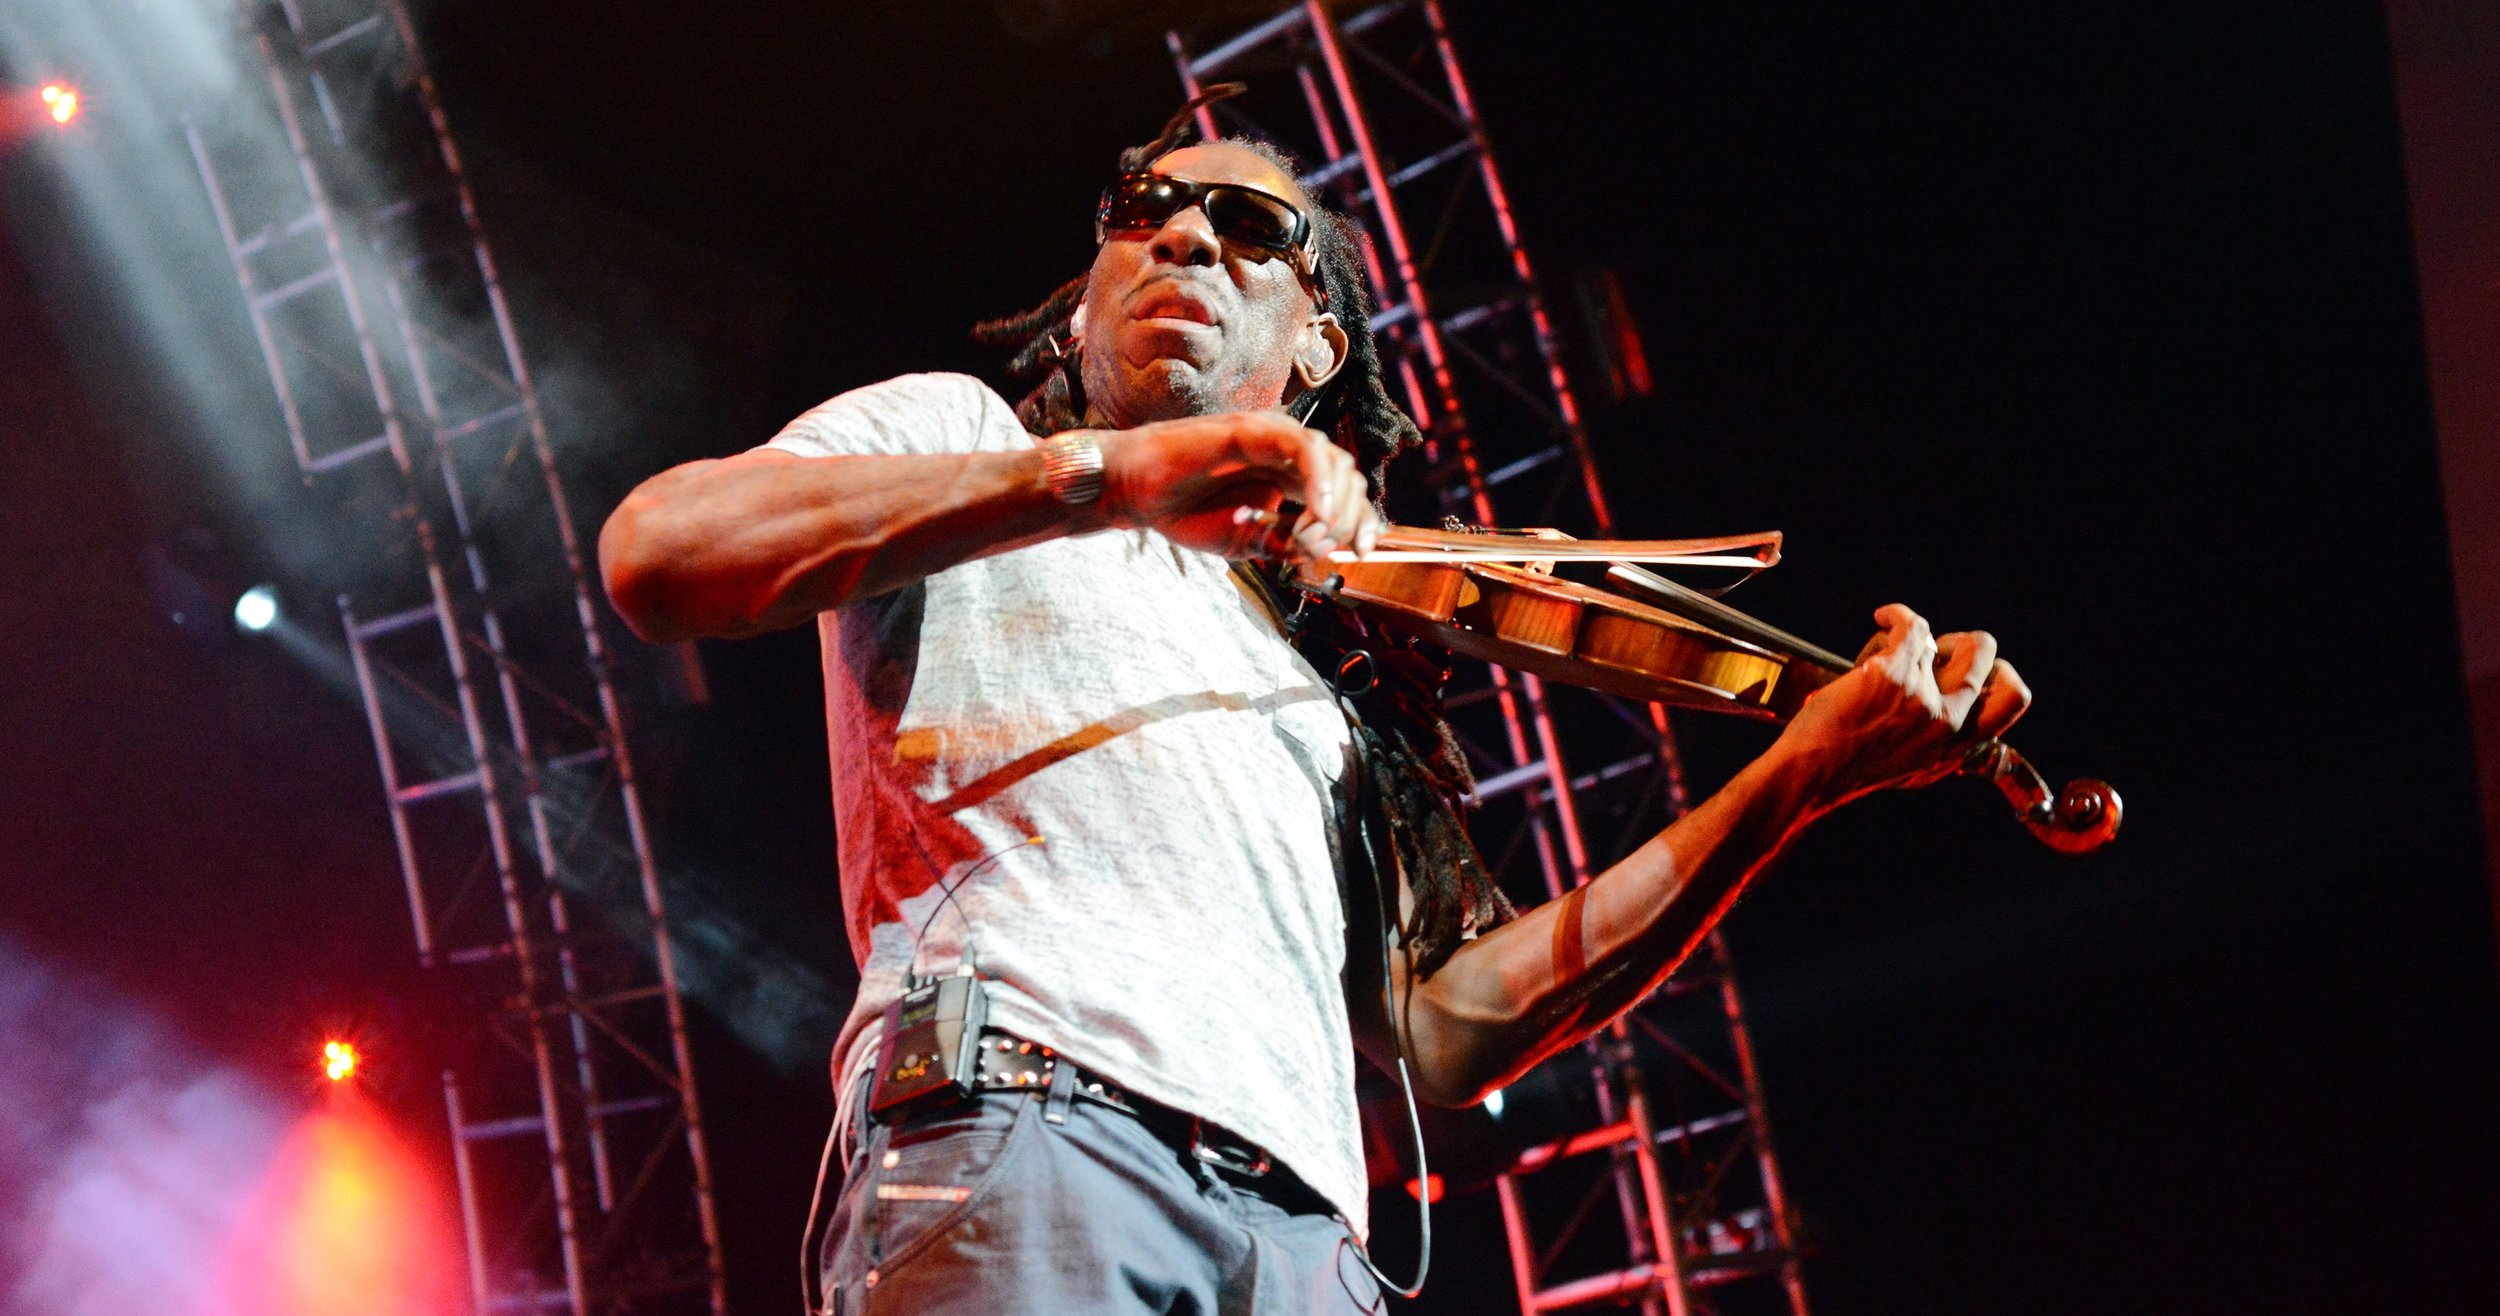 Dave Matthews Band violinist Boyd Tinsley accused of sexual misconduct: Report